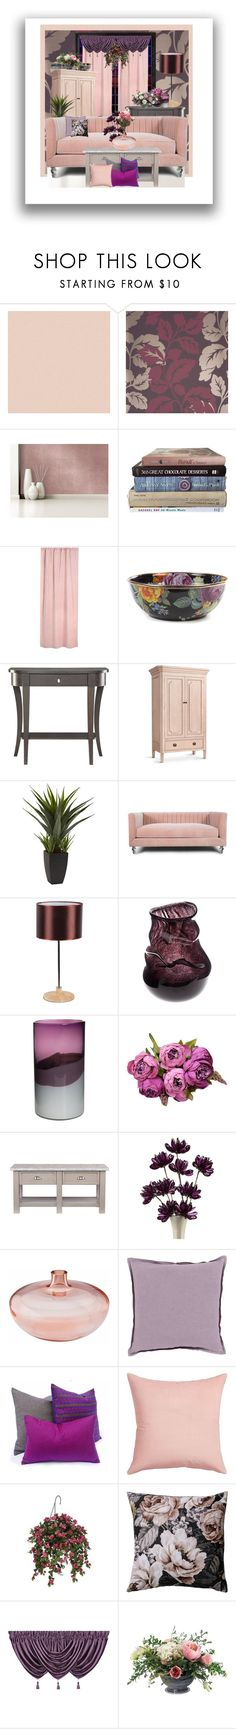 """Lavender Fairy's Lament"" by nefertiti1373 on Polyvore featuring interior, interiors, interior design, home, home decor, interior decorating, Devine Color, MacKenzie-Childs, Convenience Concepts and Redford House"